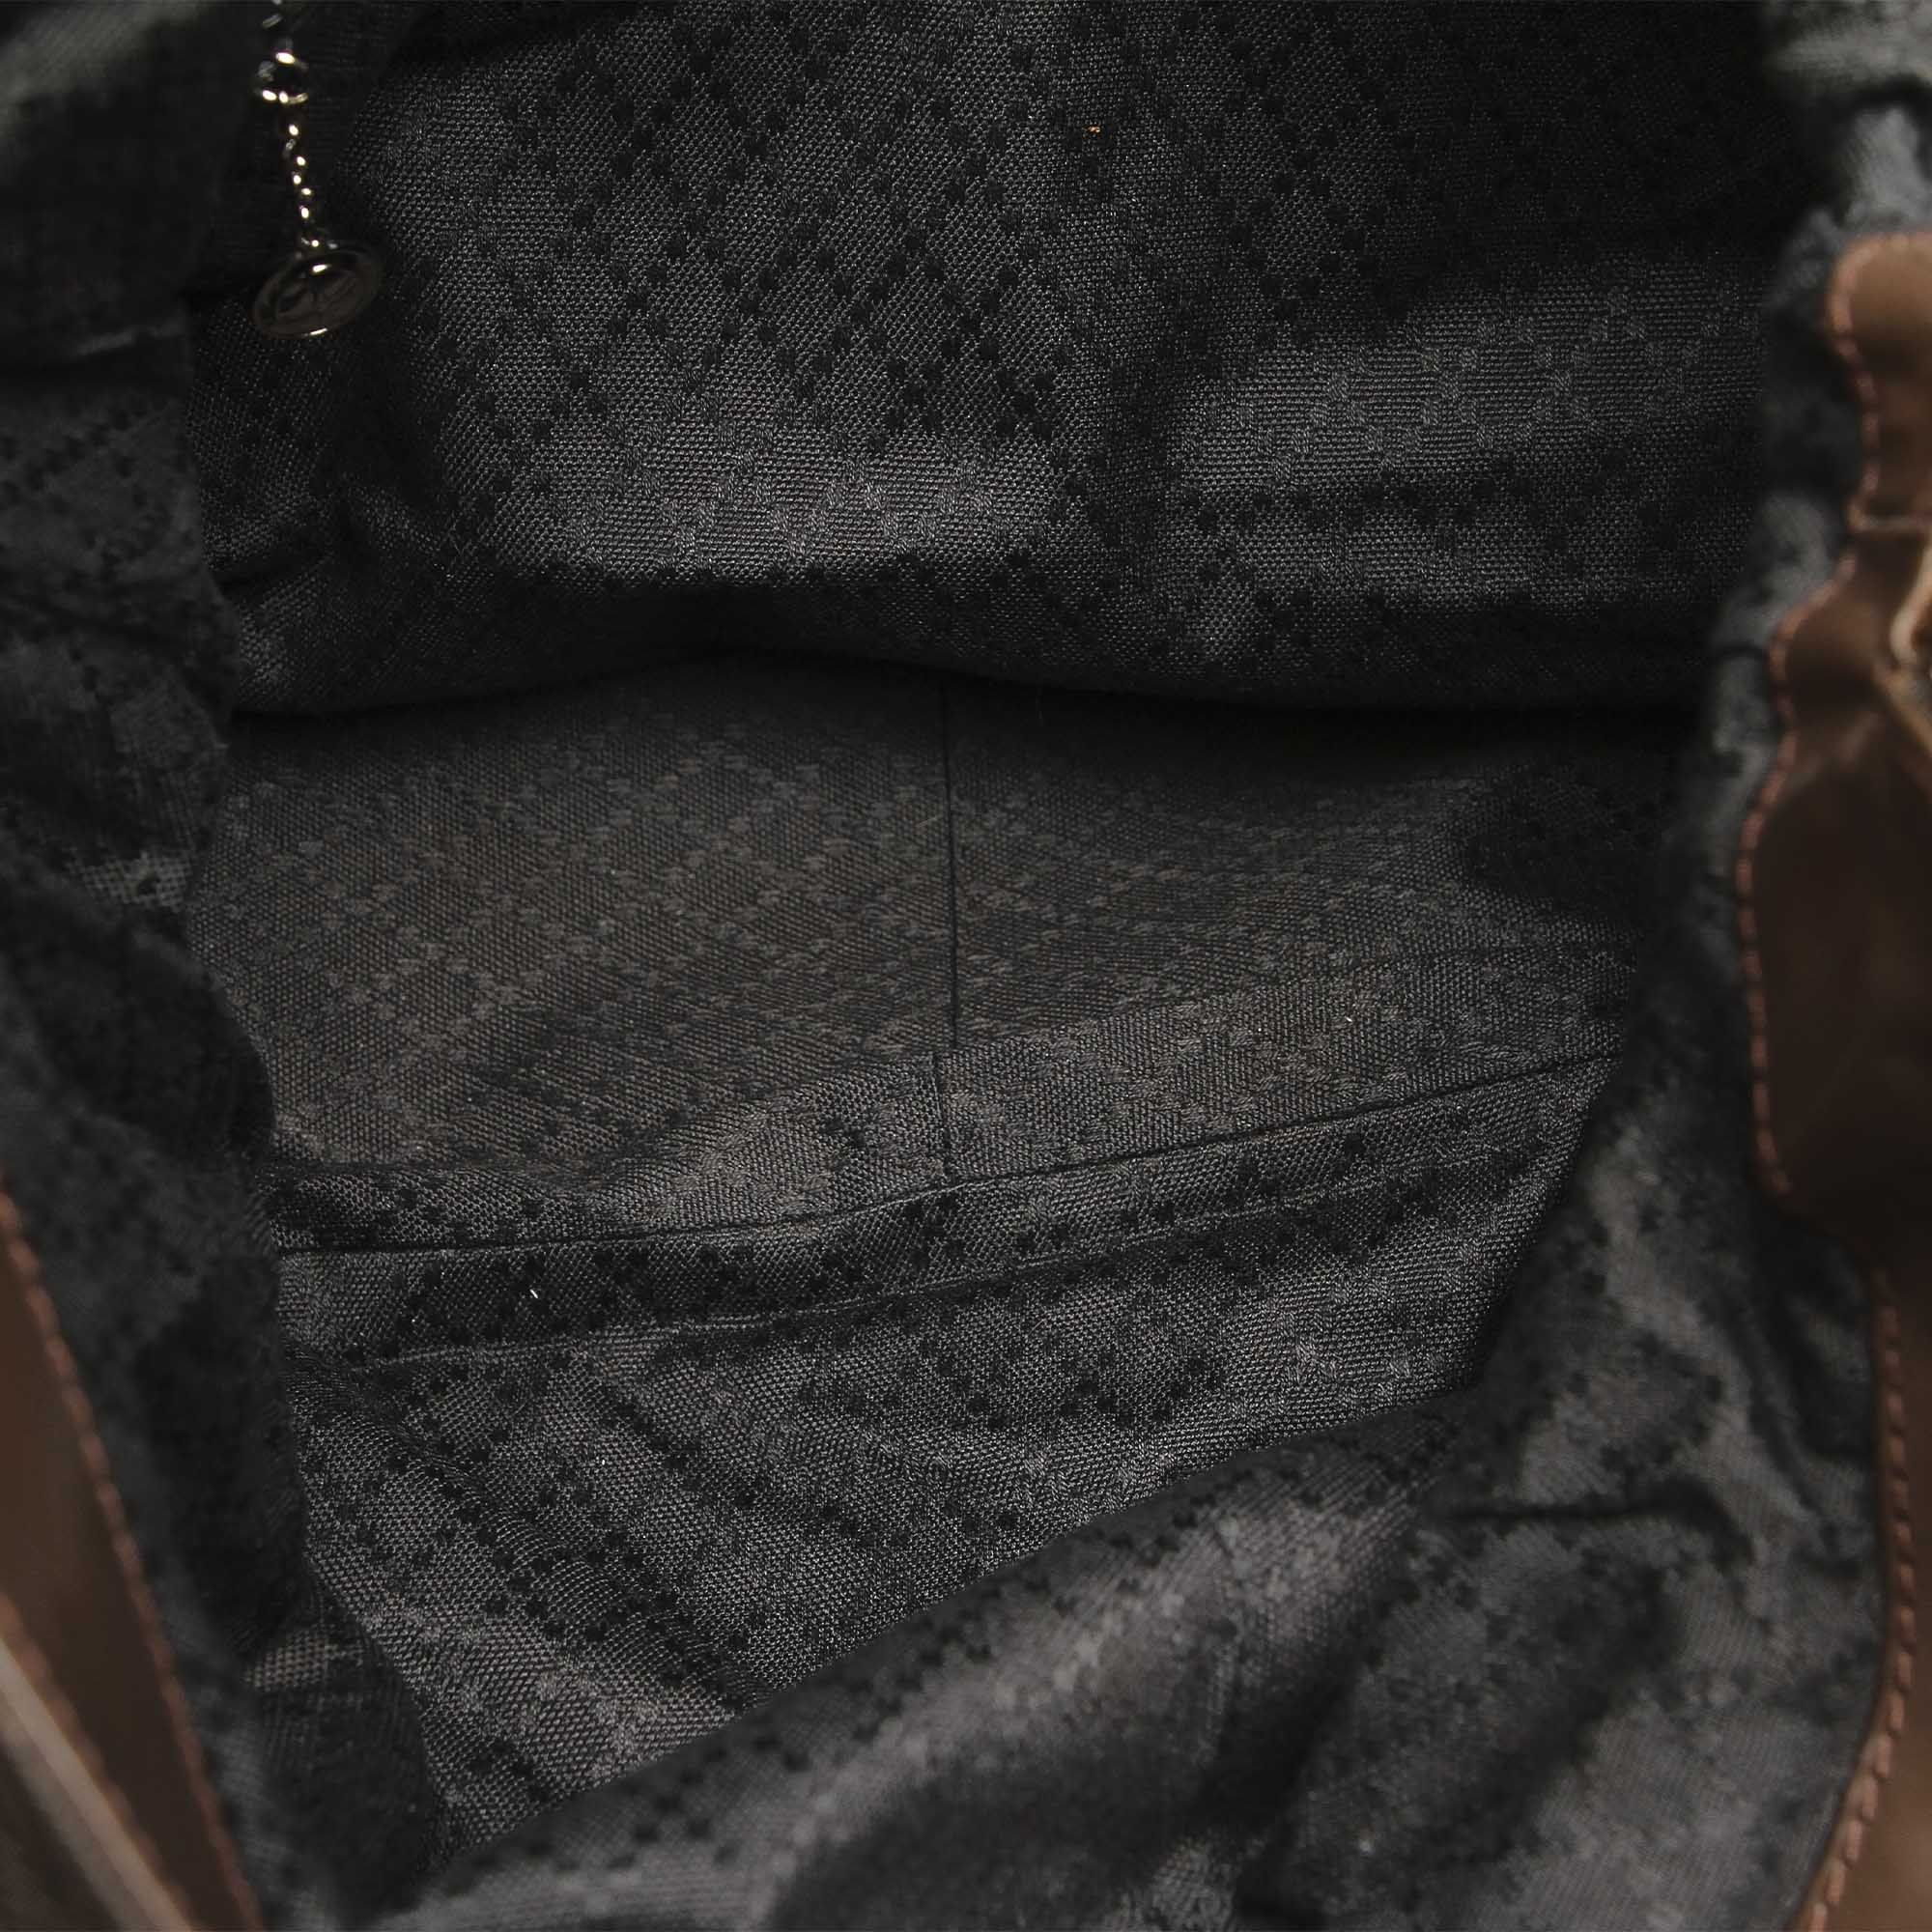 Vintage Gucci Bamboo Canvas Satchel Brown